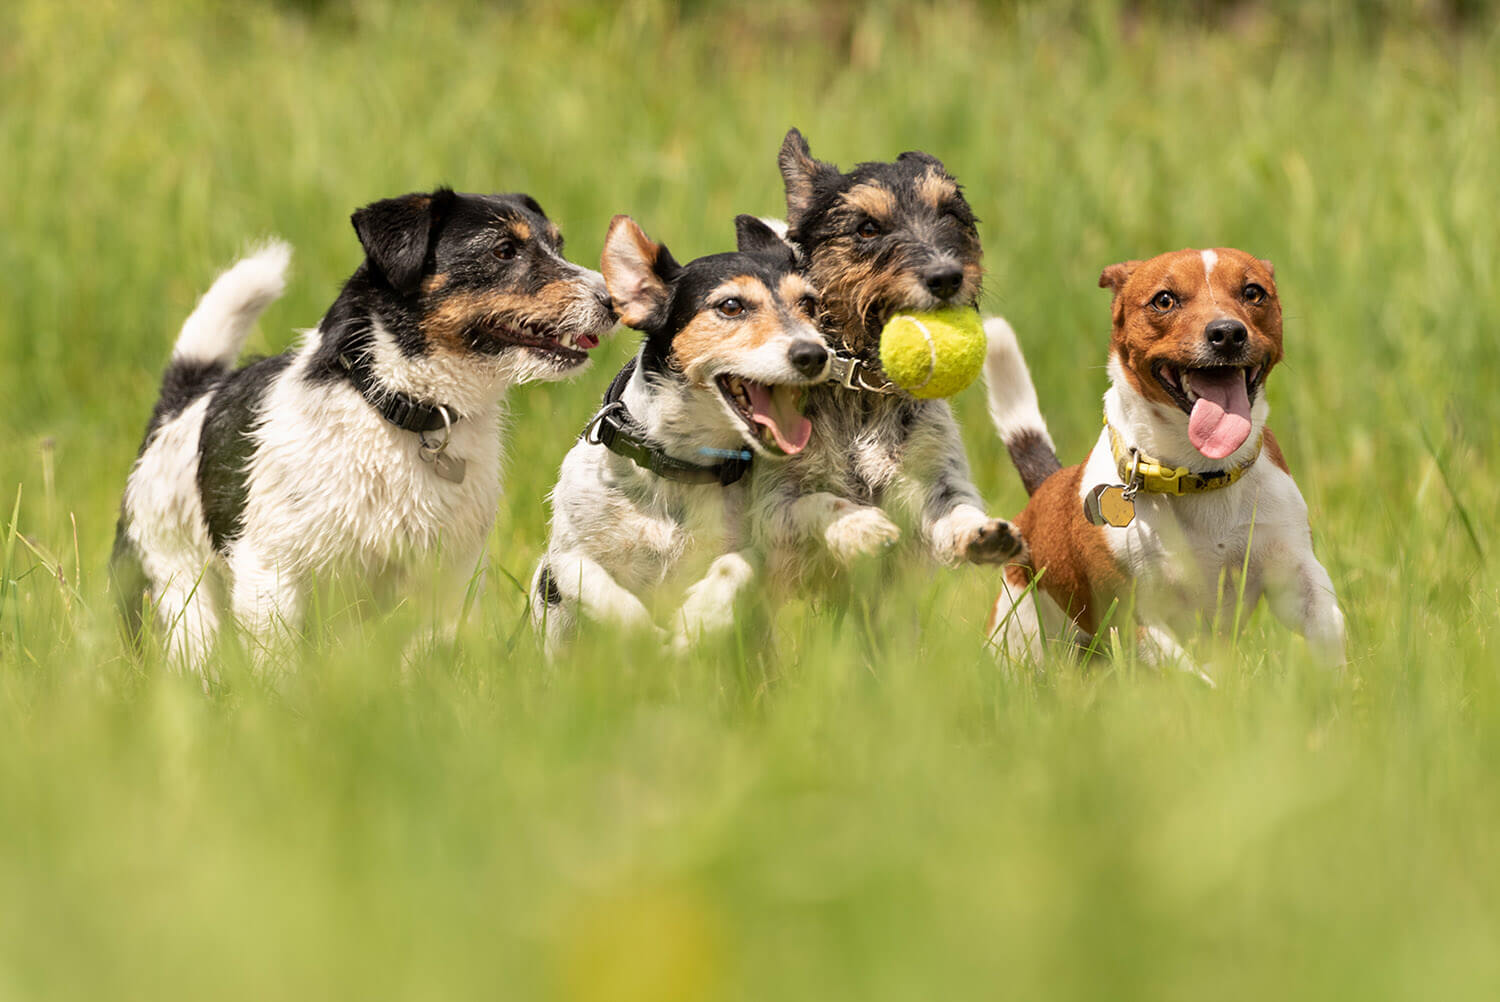 The friendliest dog breeds for families